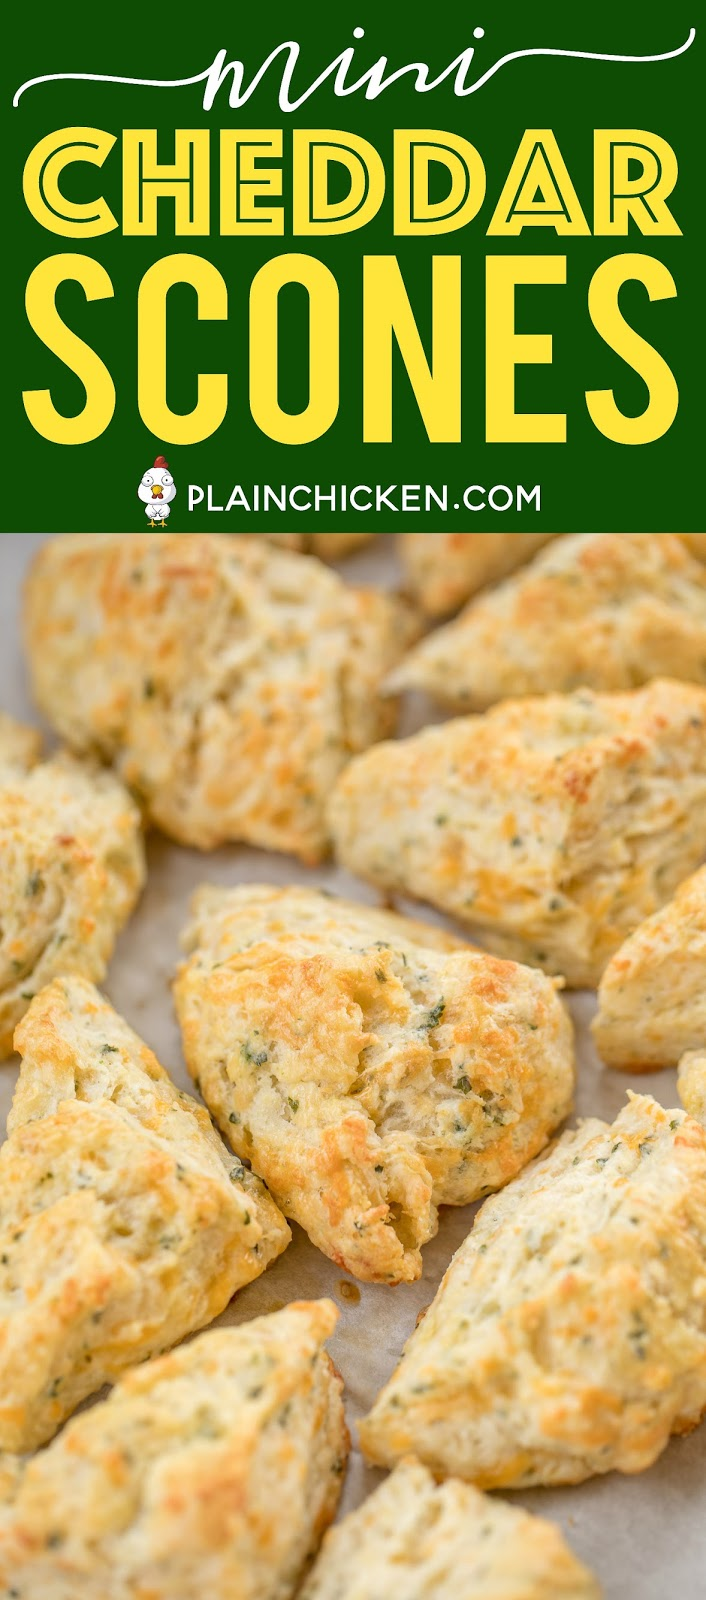 Mini Cheddar Scones - CRAZY good!!! They go with everything - soups, stews, casseroles, grilled meats. We make these yummy biscuits every week! Flour, baking soda, baking powder, salt, butter, cheese, and buttermilk. Surprisingly easy to make! We gobble these up!! #biscuits #cheddar #scones #breadrecipe